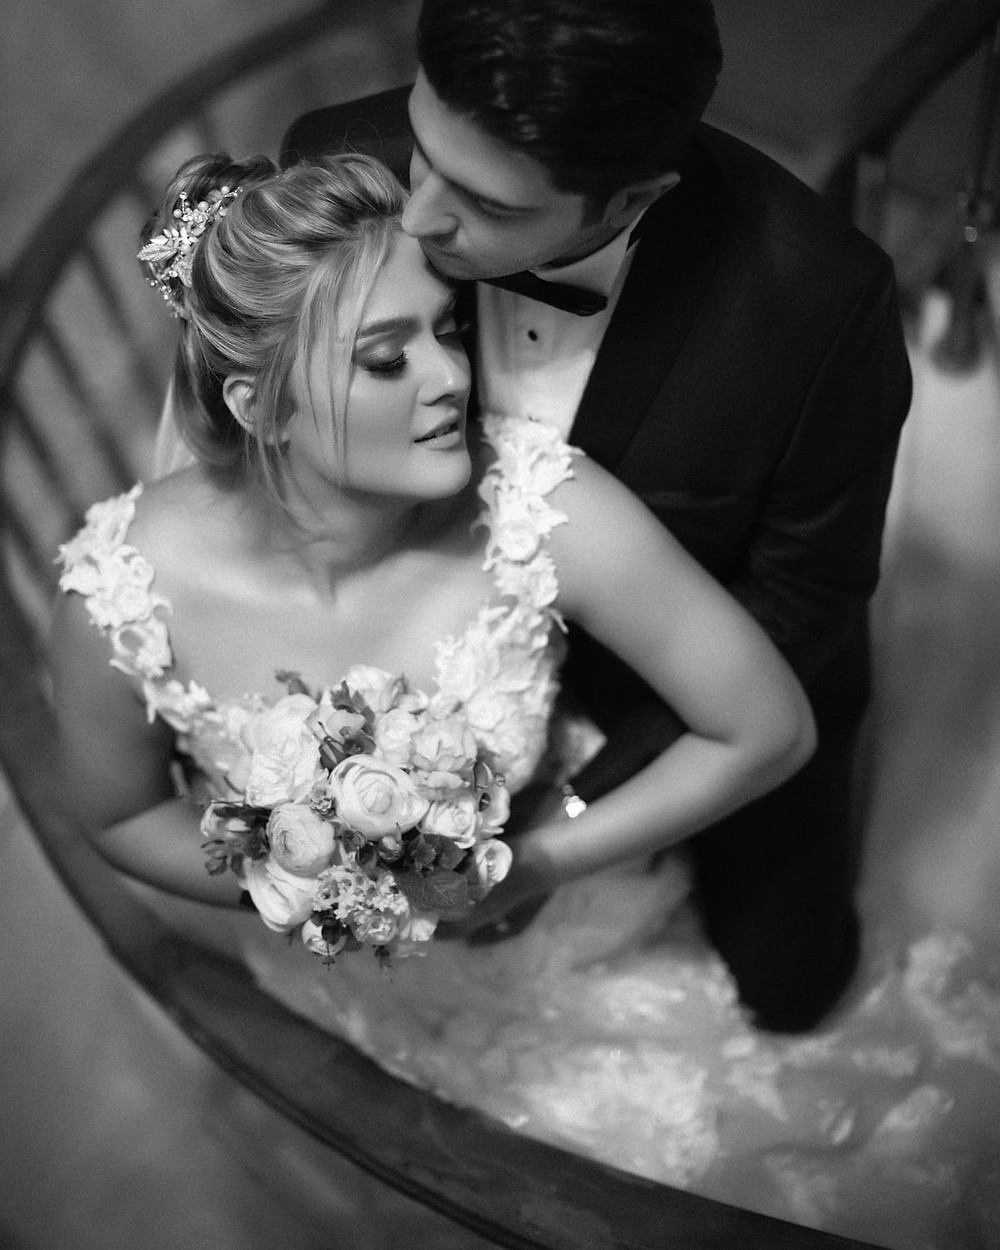 Newlyweds posing for a photo on a spiral staircase